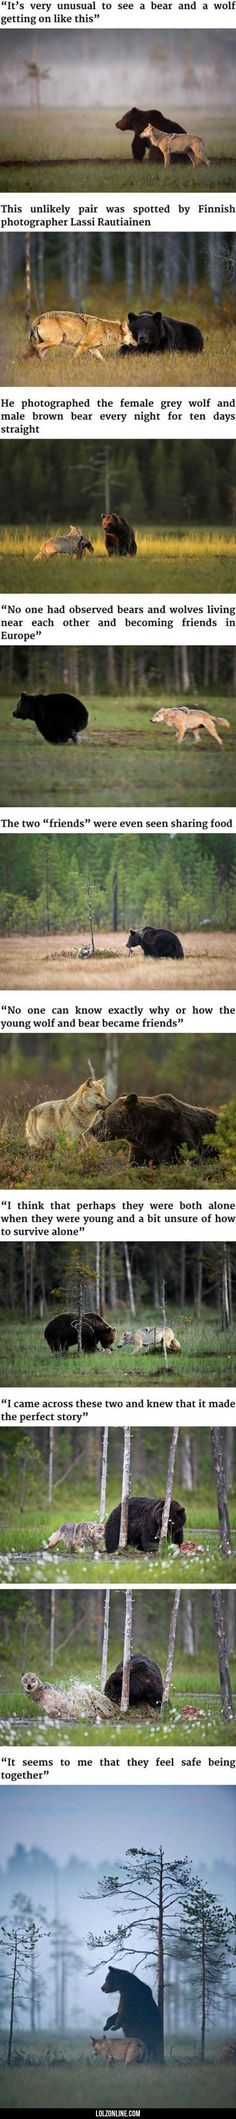 Awesome (if a friggin wolf and bear and be friends can't humans be friends with humans?!)#funny #lol #lolzonline